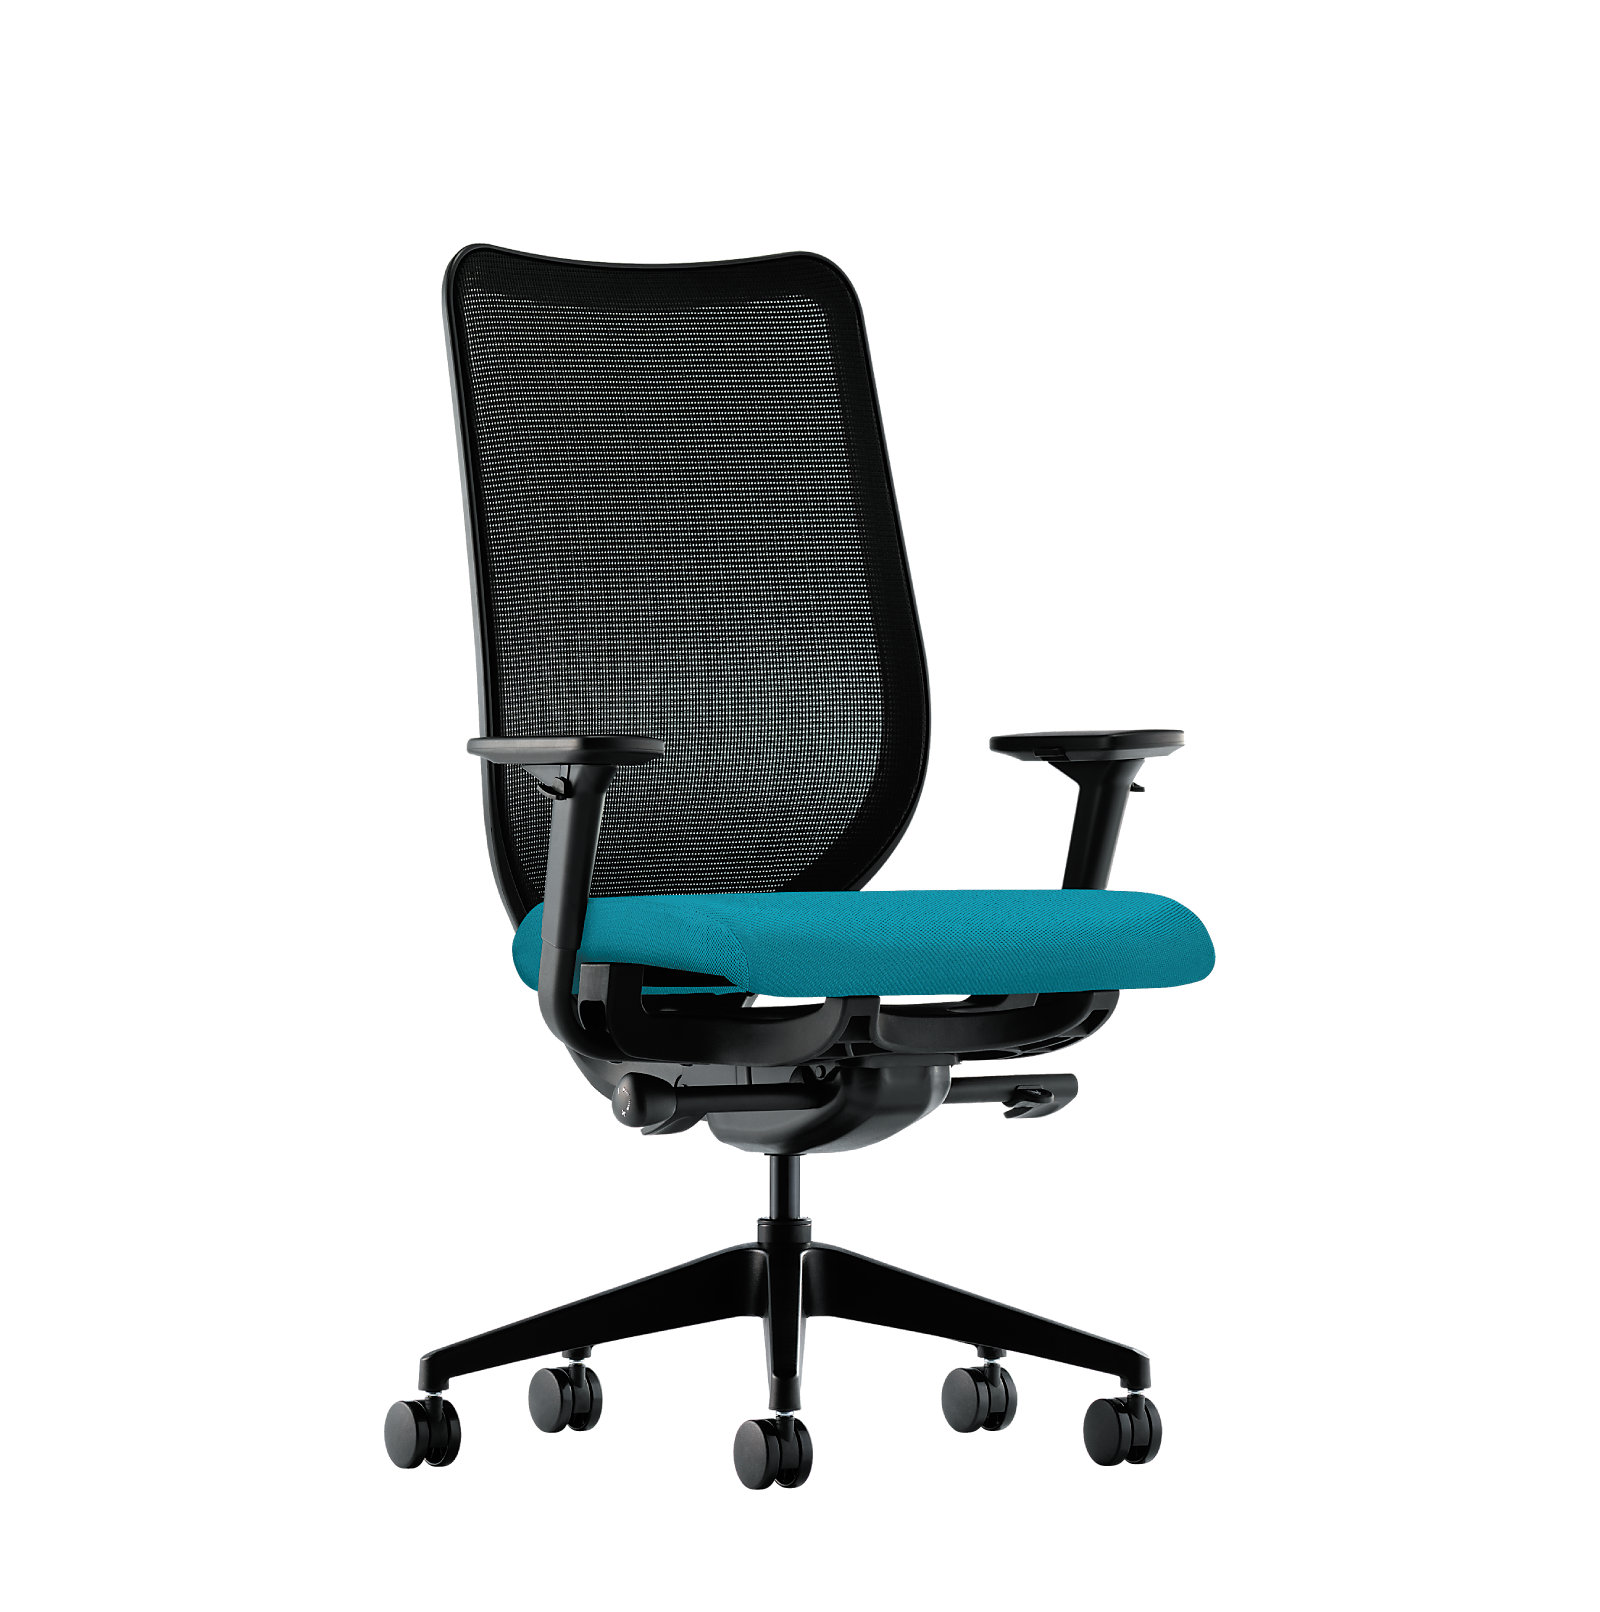 kamloops star chairs depth by chair crio asynchronous eofficeproducts mats fabric seat base hon basyx back office mesh mid task systems black width height furniture x